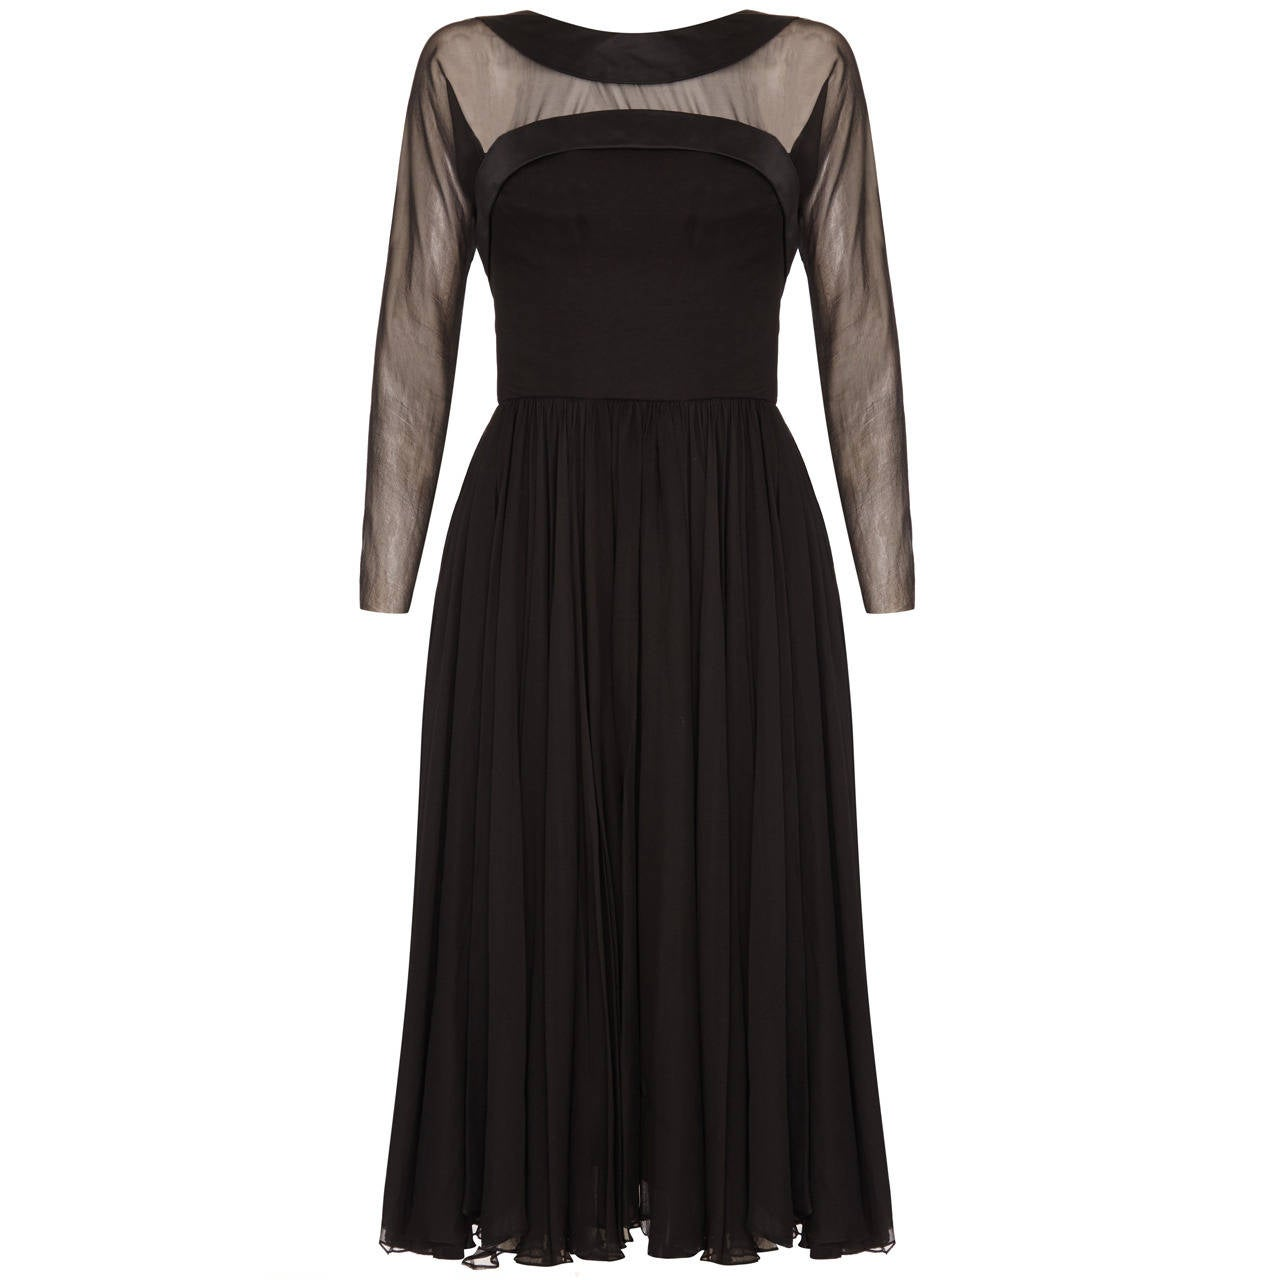 1960s Helena Barbieri Black Silk Chiffon Dress